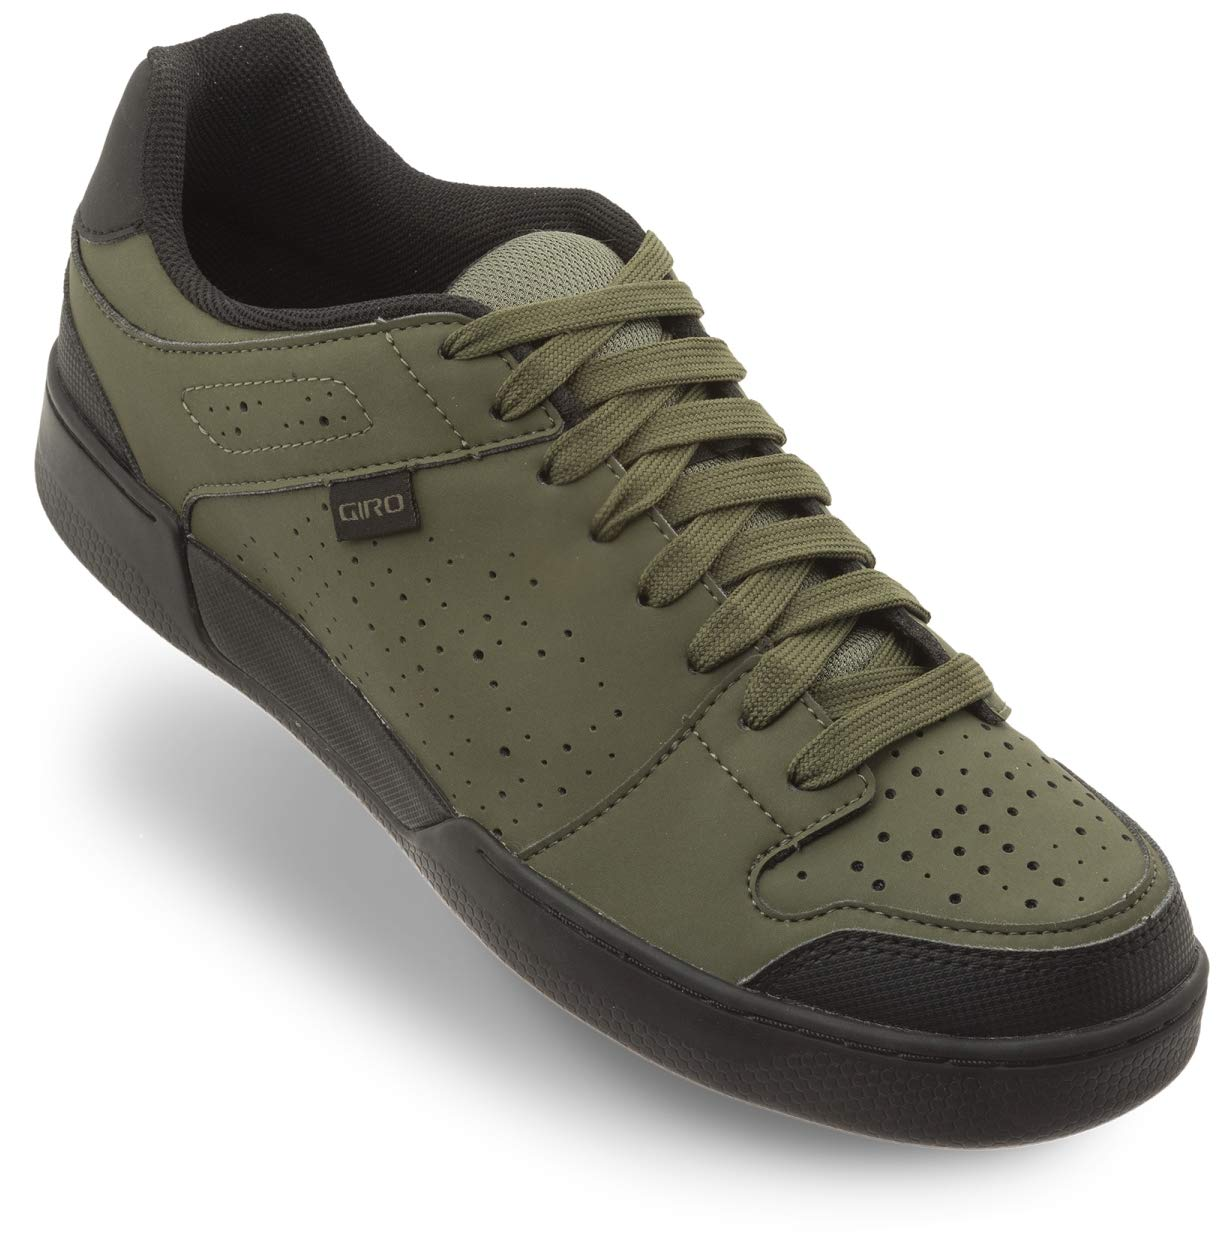 Giro Jacket II Cycling Shoe - Men's Olive/Black 37